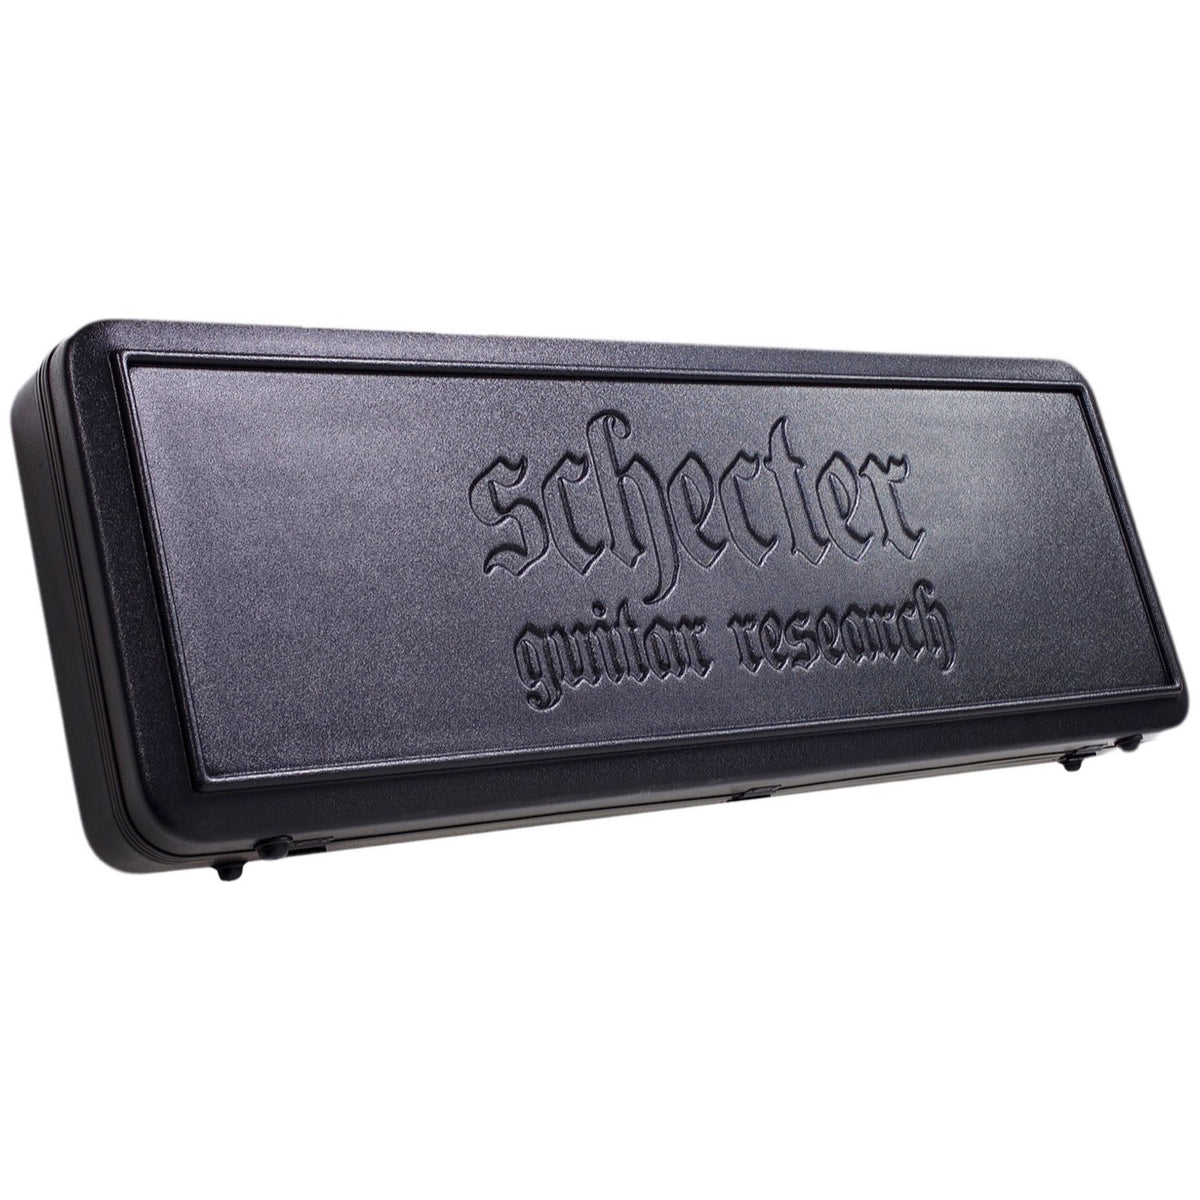 Schecter Hardshell Case for Avenger and Synyster Guitars